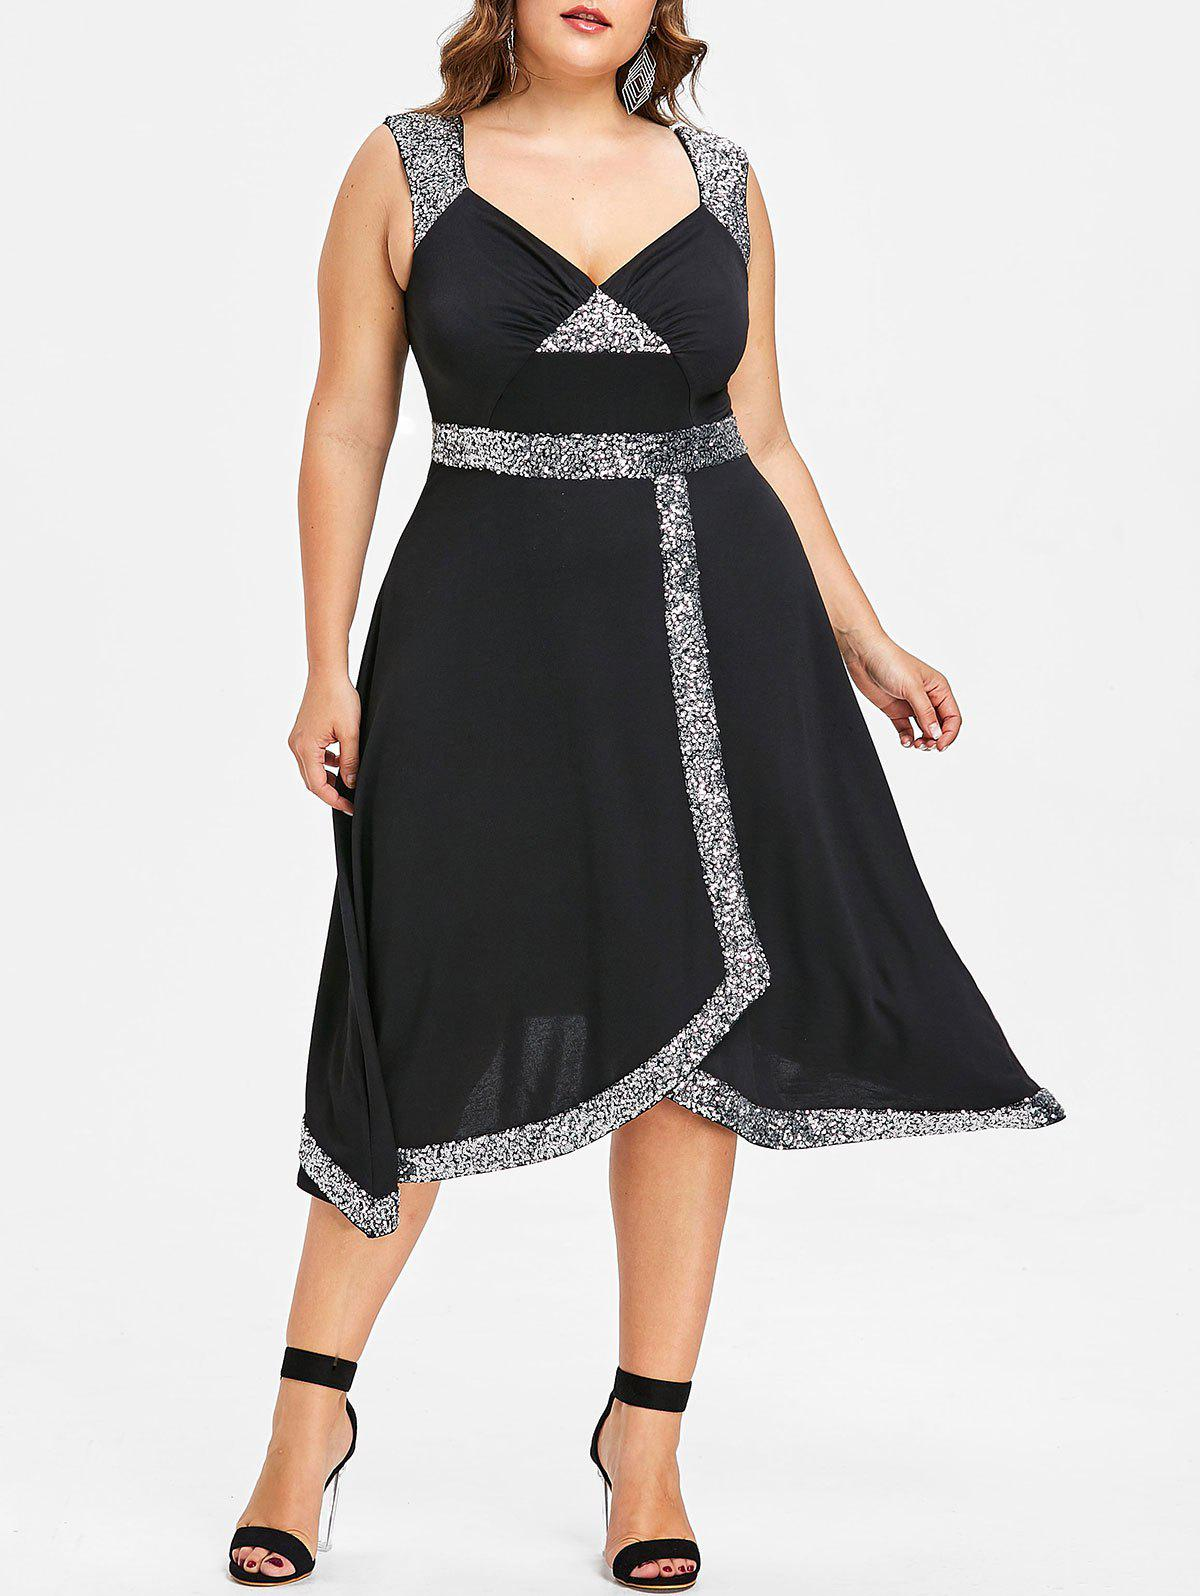 Fancy Plus Size Sequined Trim Sparkly Swing Dress